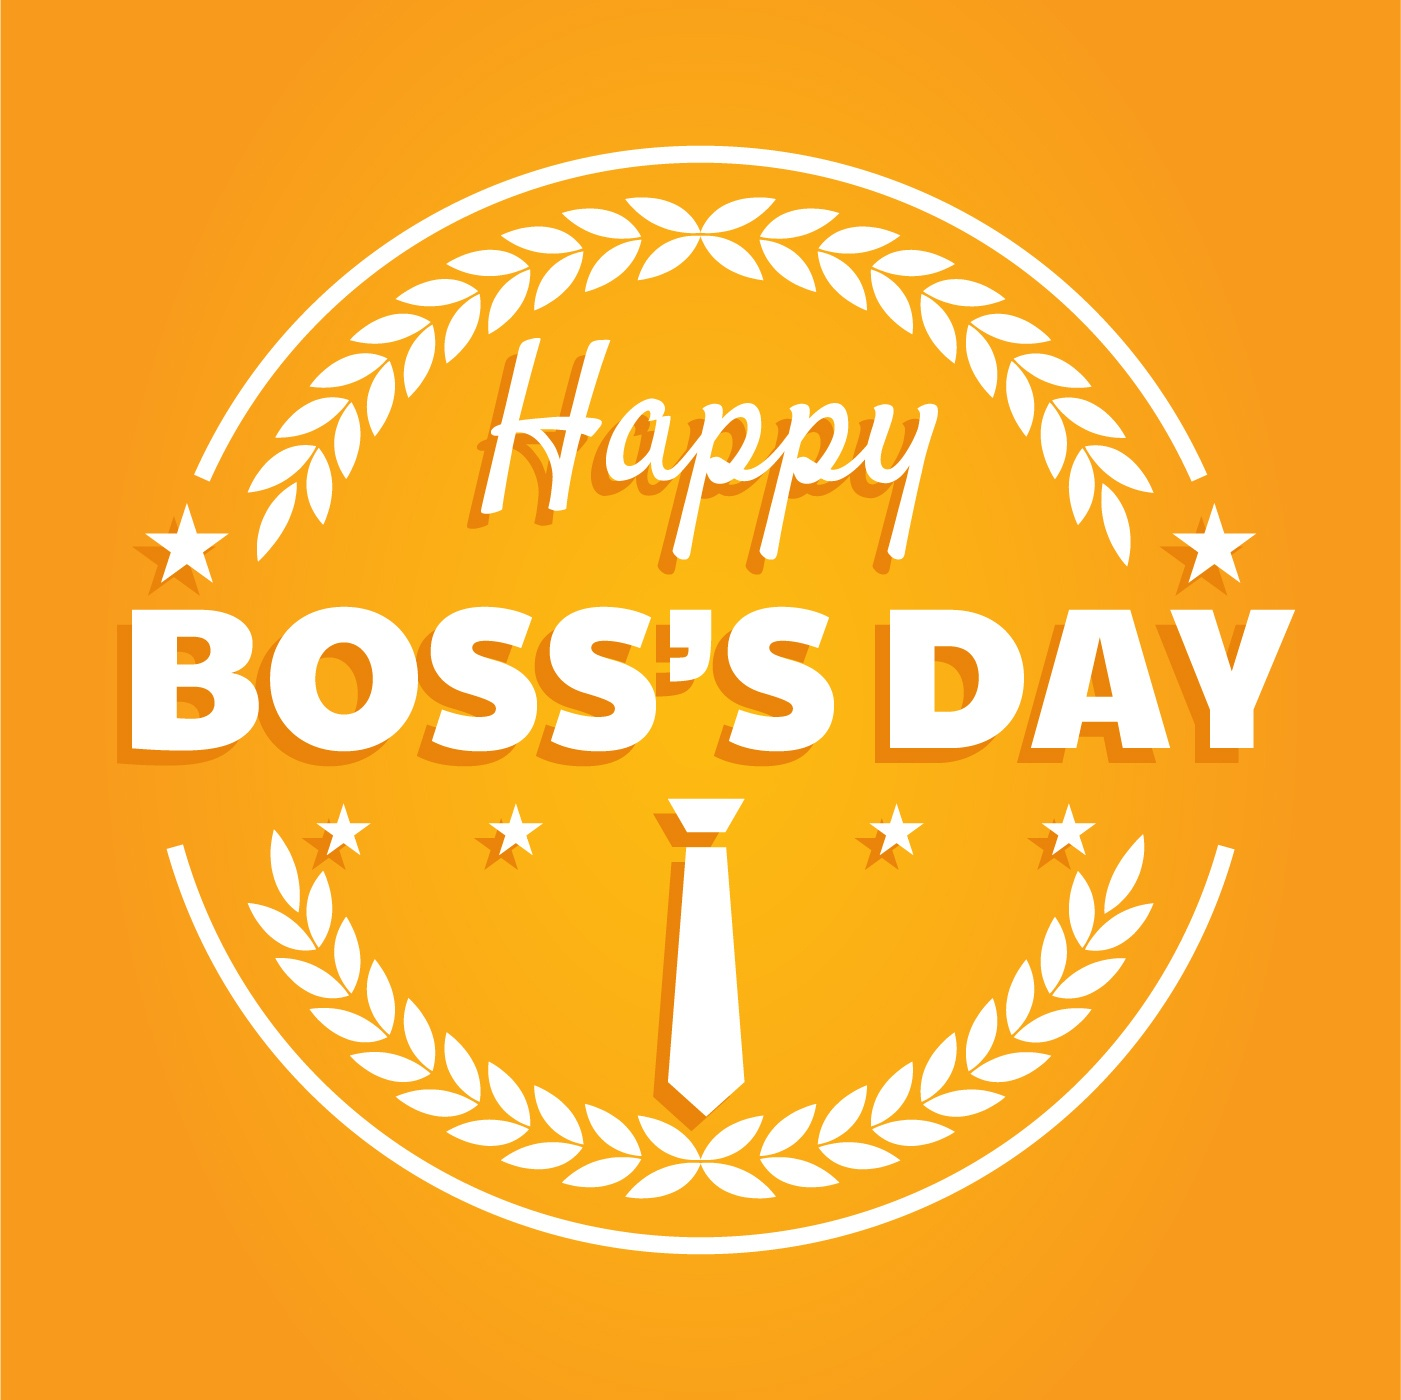 Happy Boss Day Wishes Greeting Cards, Free Ecards & Gift Cards - Boss Day Cards Free Printable